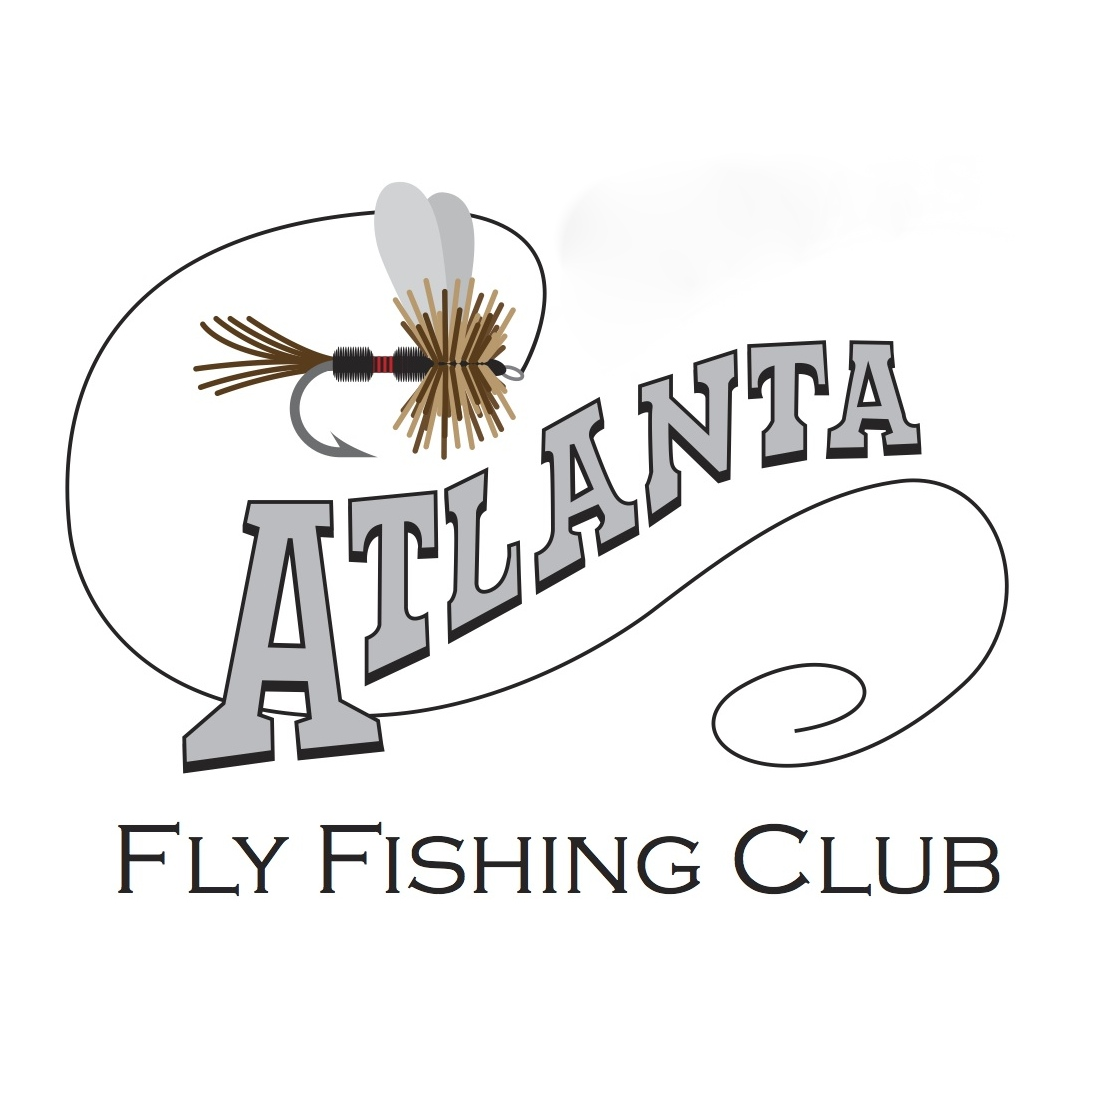 Atlanta Fly Fishing Club